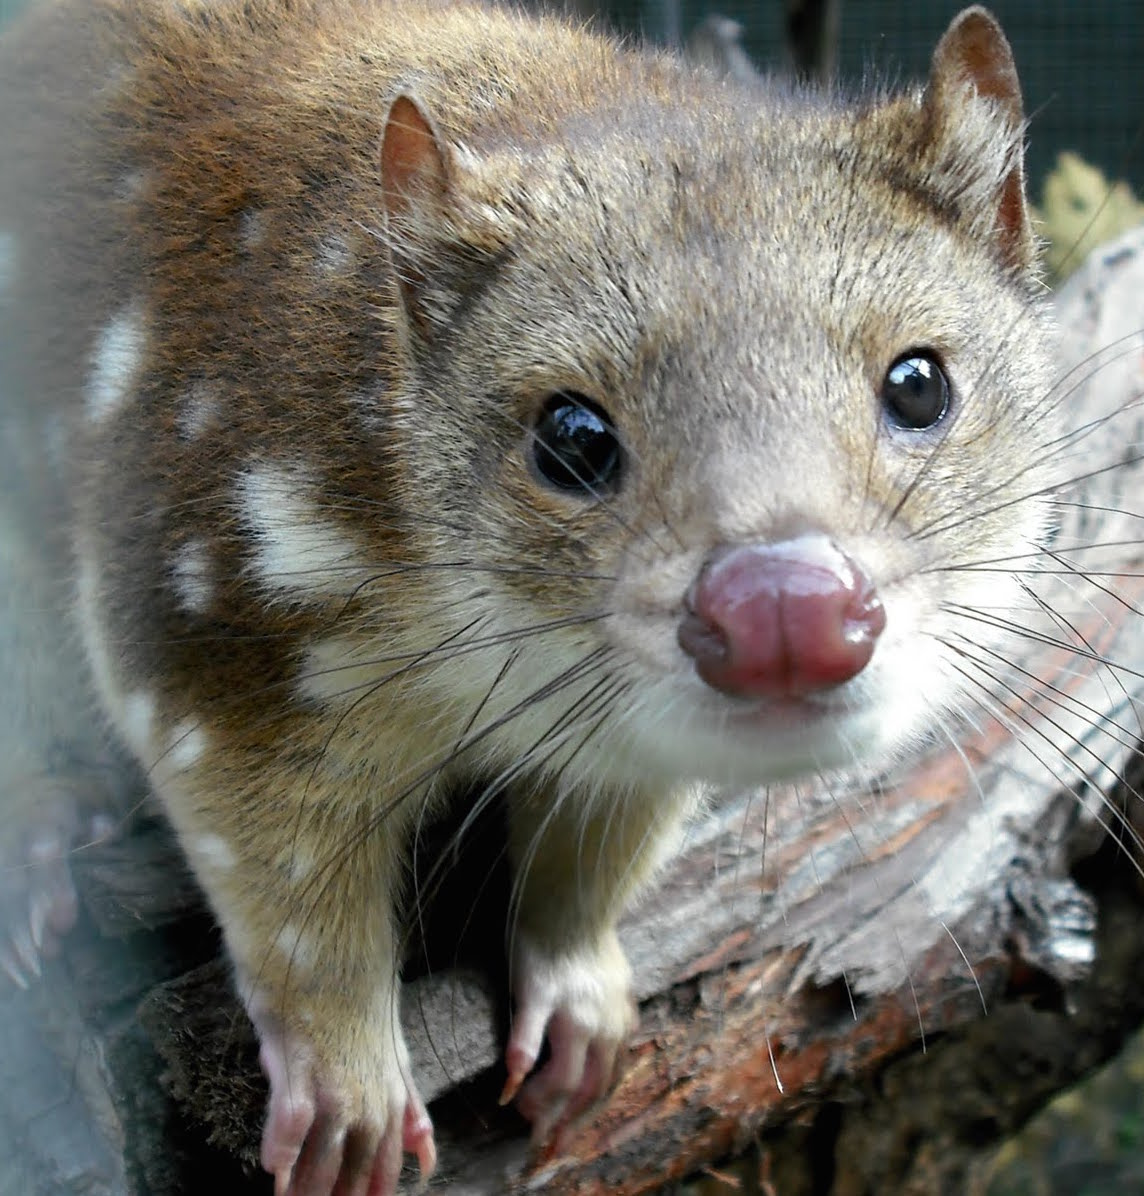 Spotted-Tailed_Quoll_Yilimi_crop.jpg